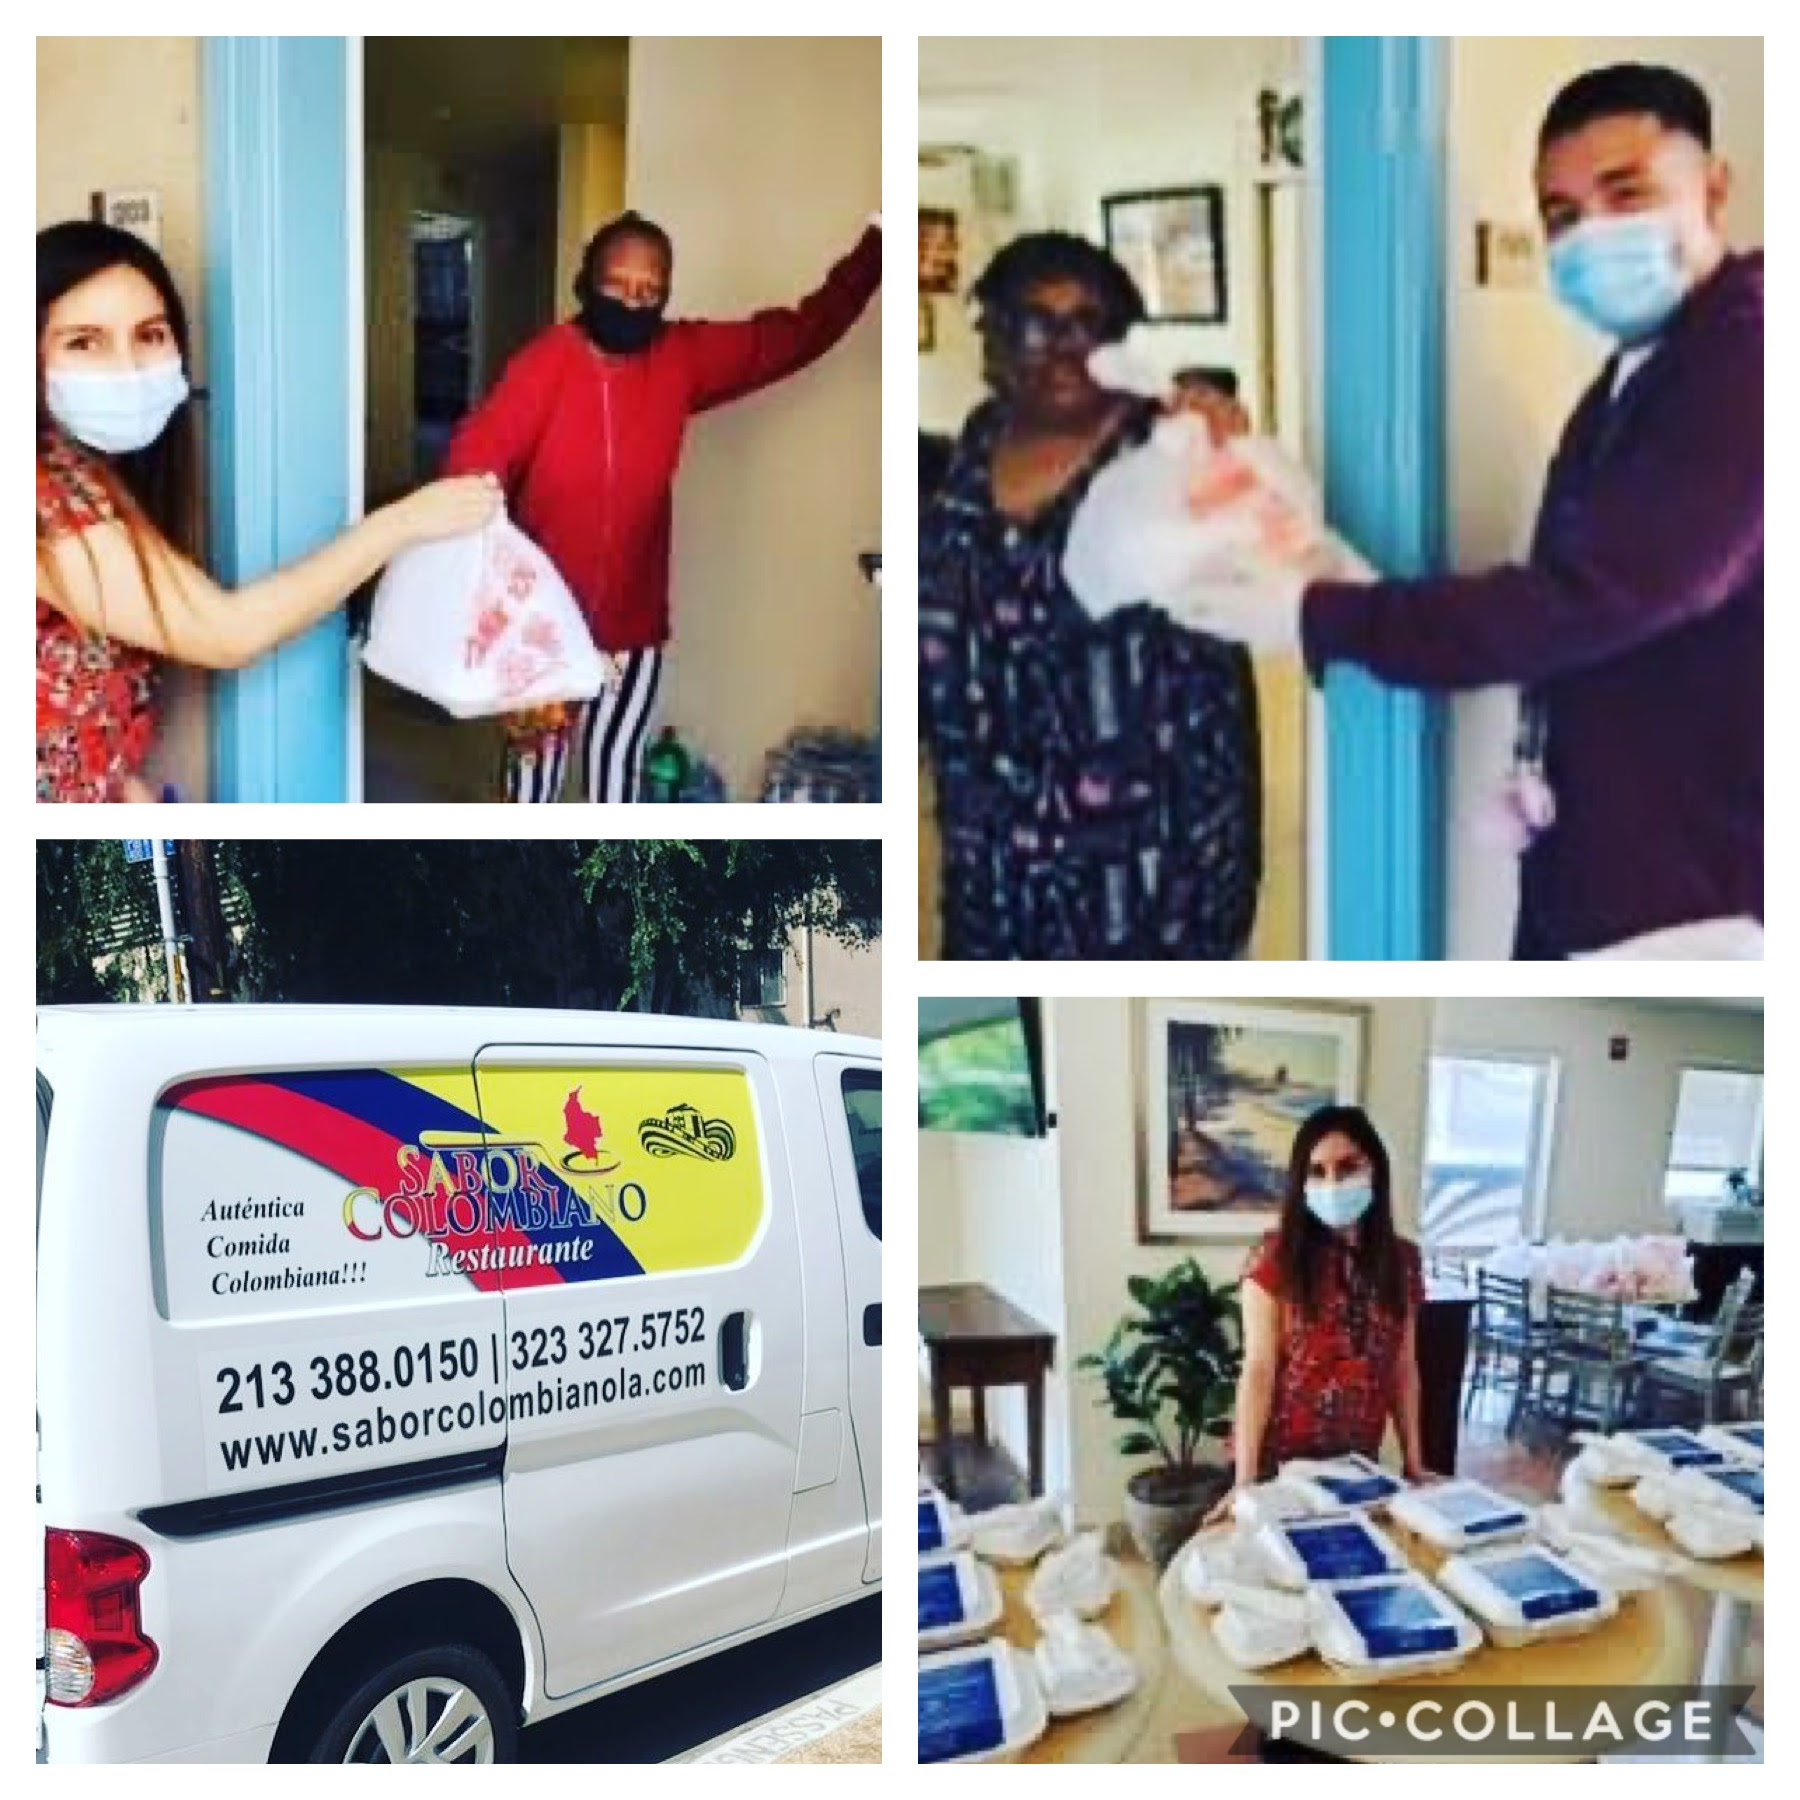 CCNP and Sabor Colmbiano Restaurant, distributed hot meals to seniors at Knob Hill Apartments in Westlake 5-22-2020 COLLAGE